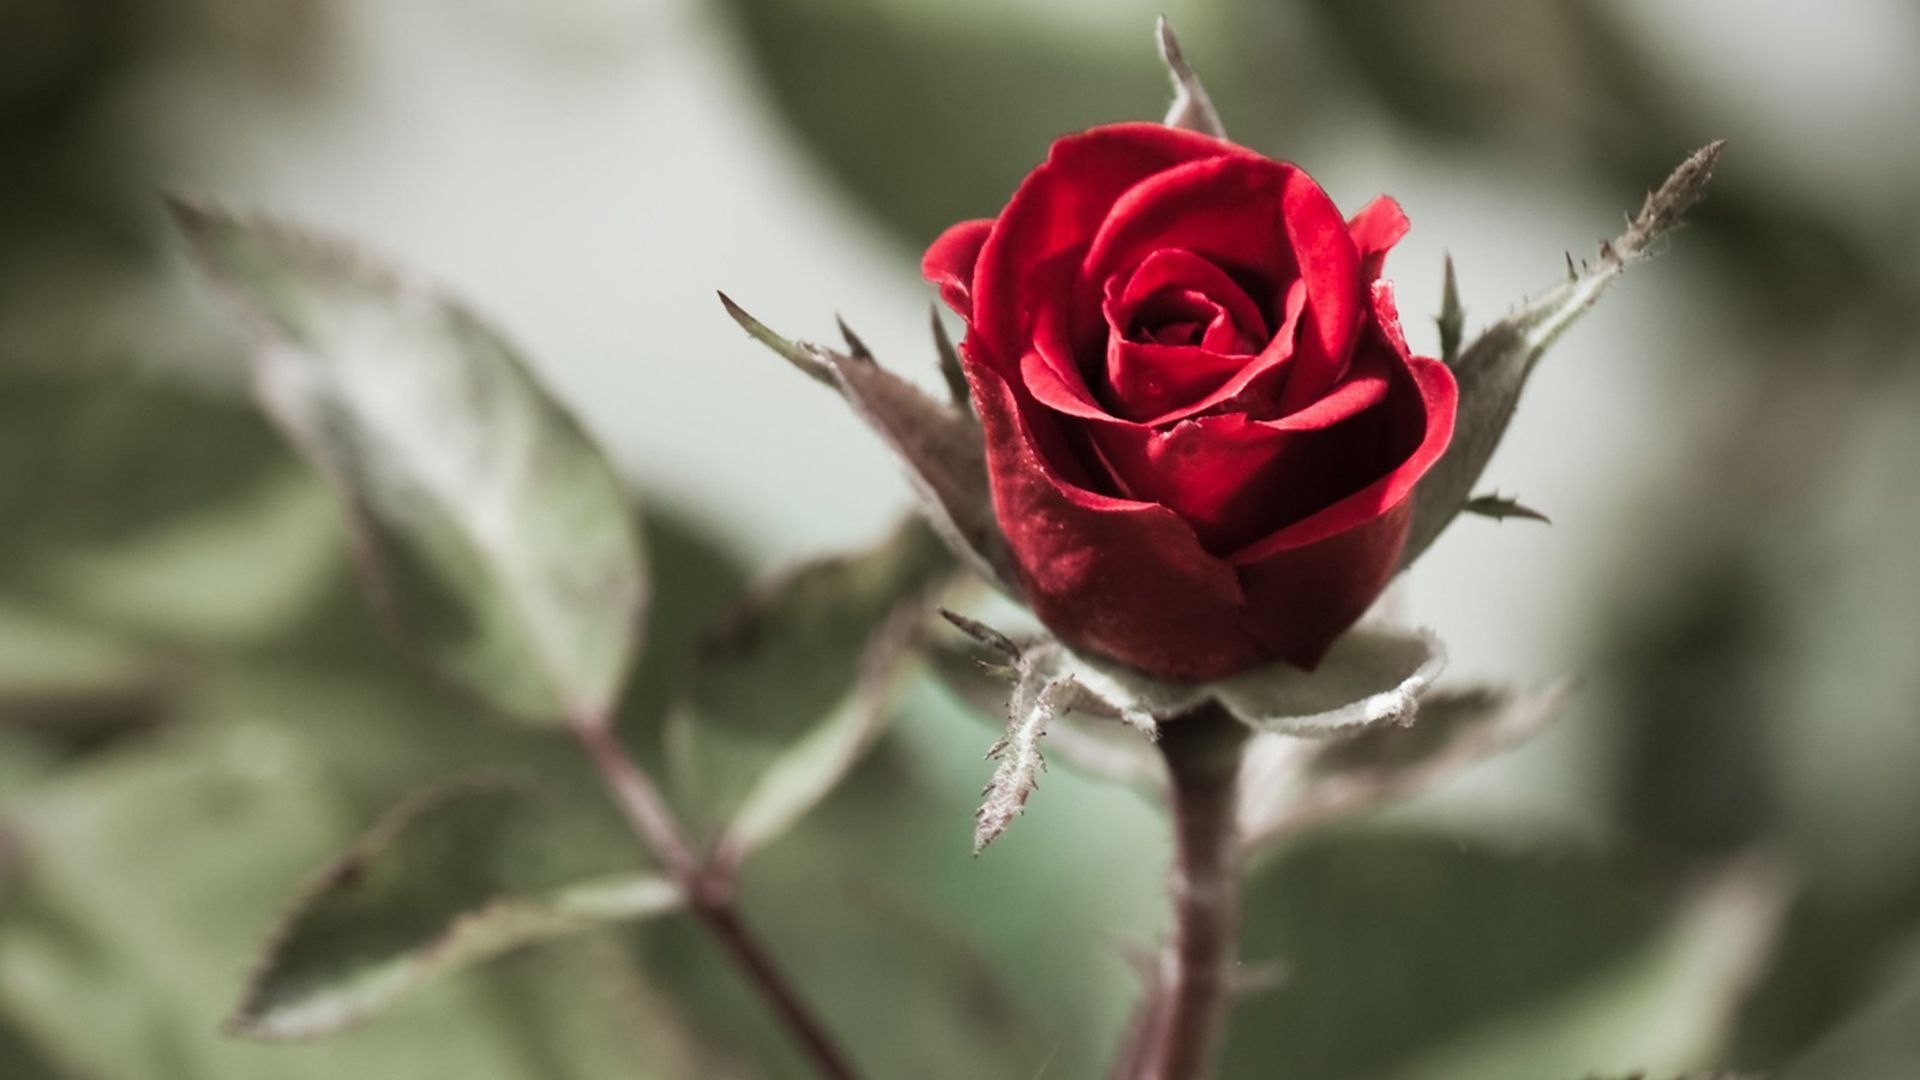 A Single Red Rose Wallpaper Flowers Nature Wallpapers) – Wallpapers and Backgrounds